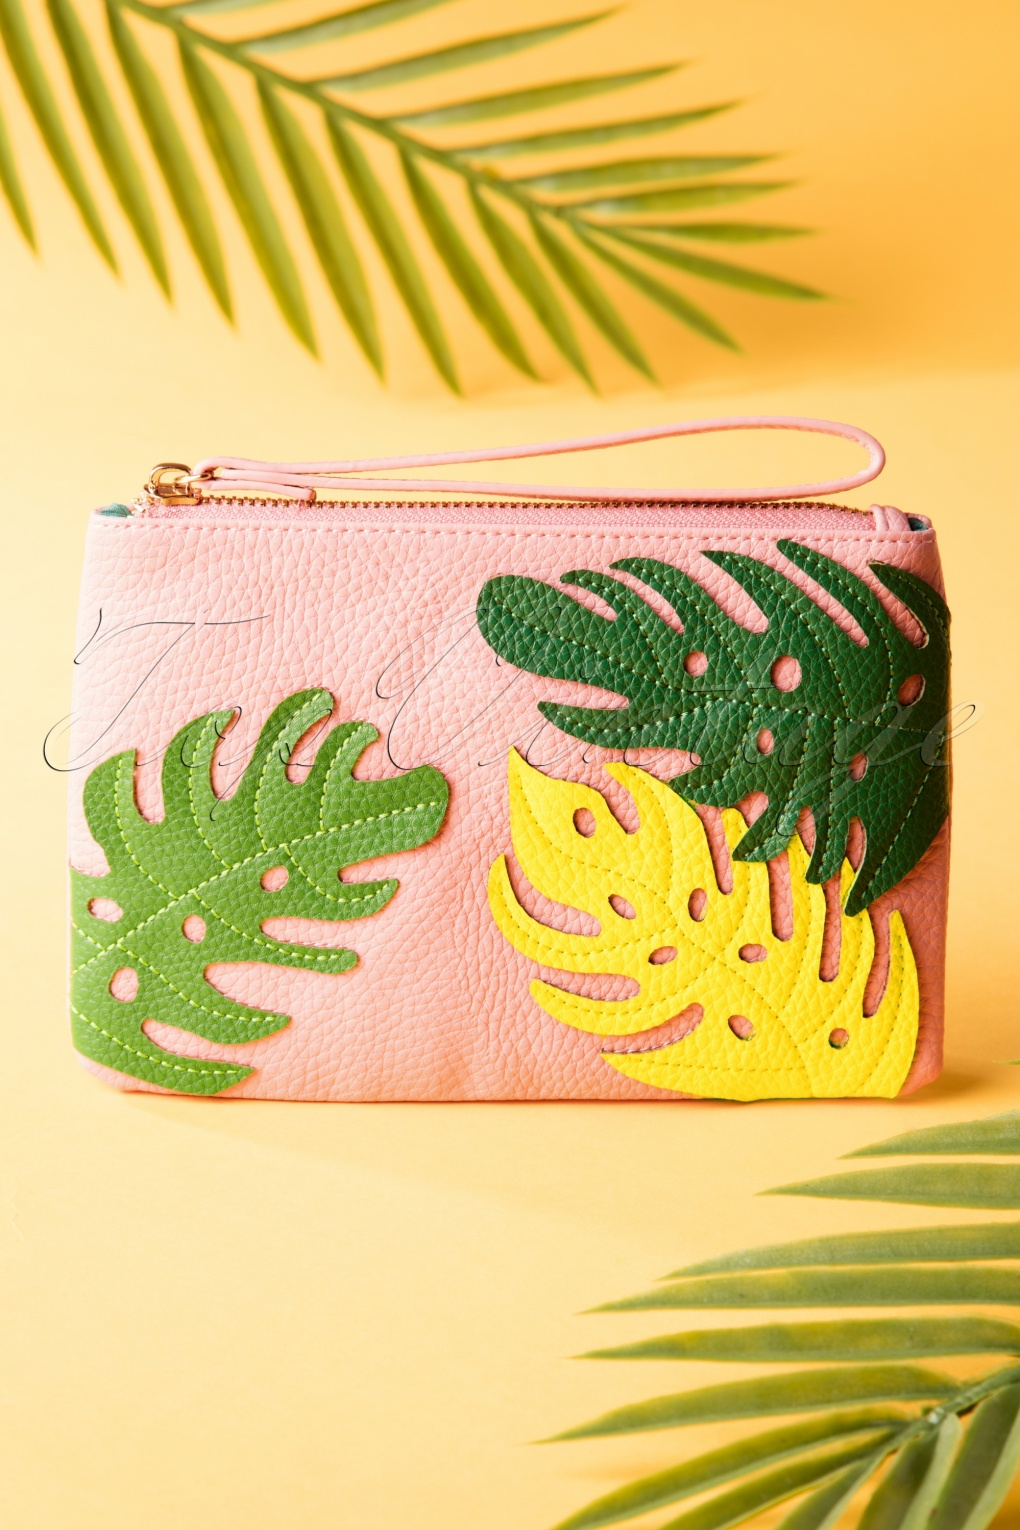 Vintage & Retro Handbags, Purses, Wallets, Bags 50s Bree Banana Leaf Small Purse in Pink �30.87 AT vintagedancer.com